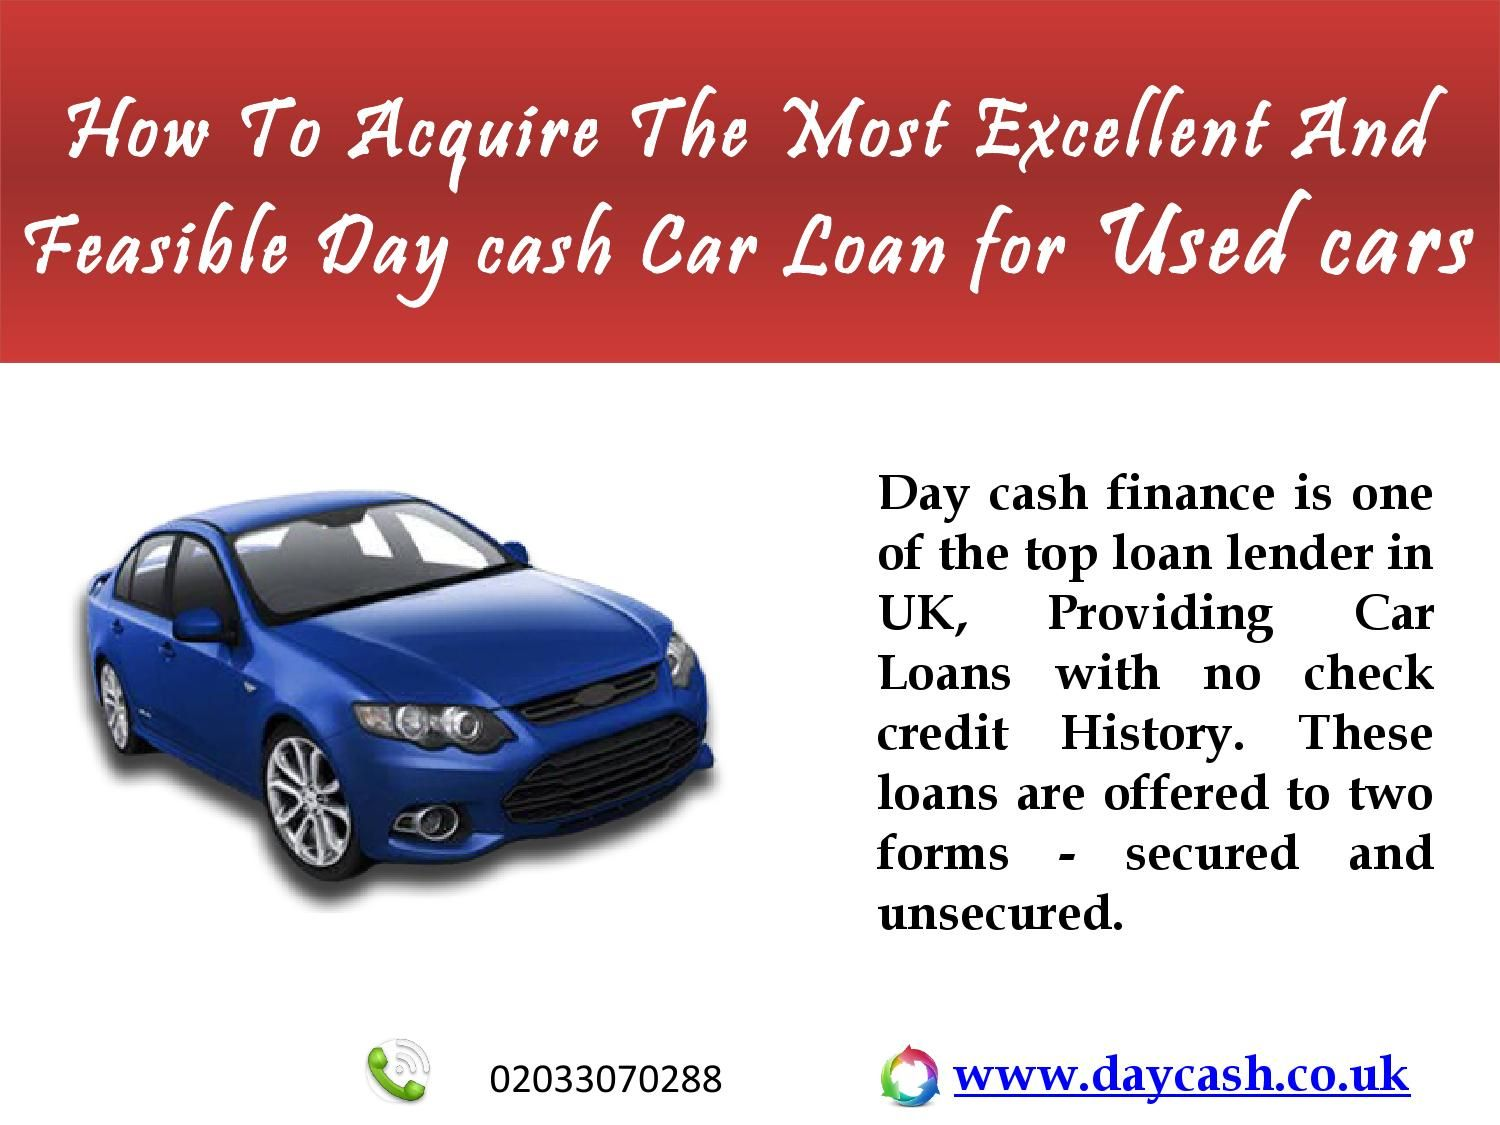 Auto Title Loans in Los Angeles, CA from LoanMart